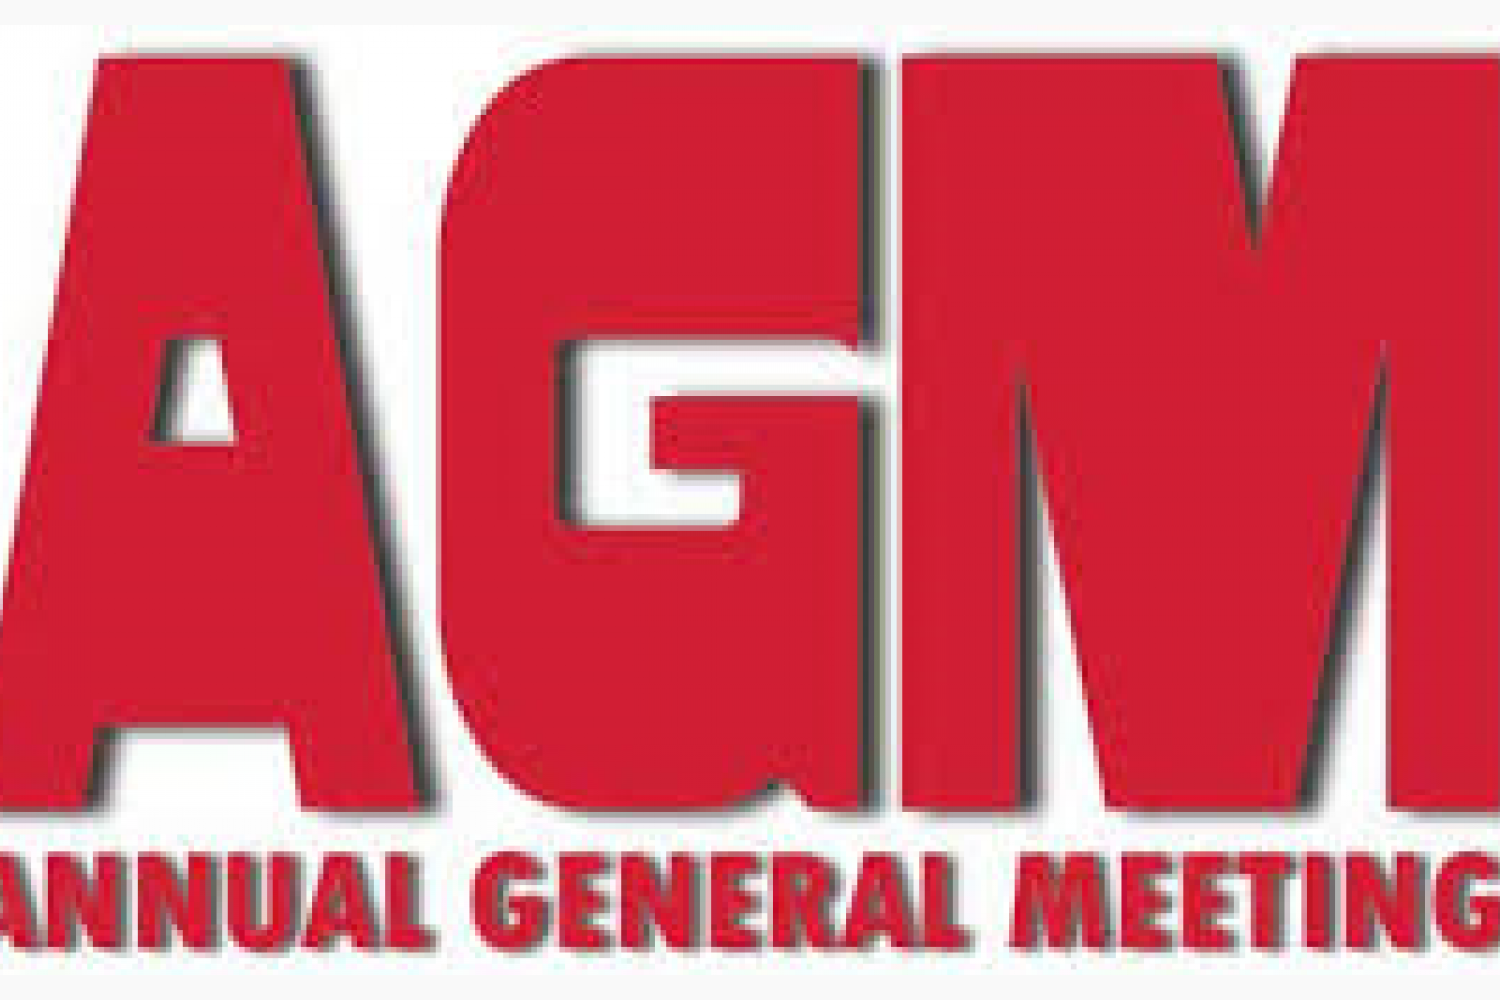 KILMACUD CROKES COISTE na nÓG AGM 2019 Wednesday 27TH Nov 8.30pm